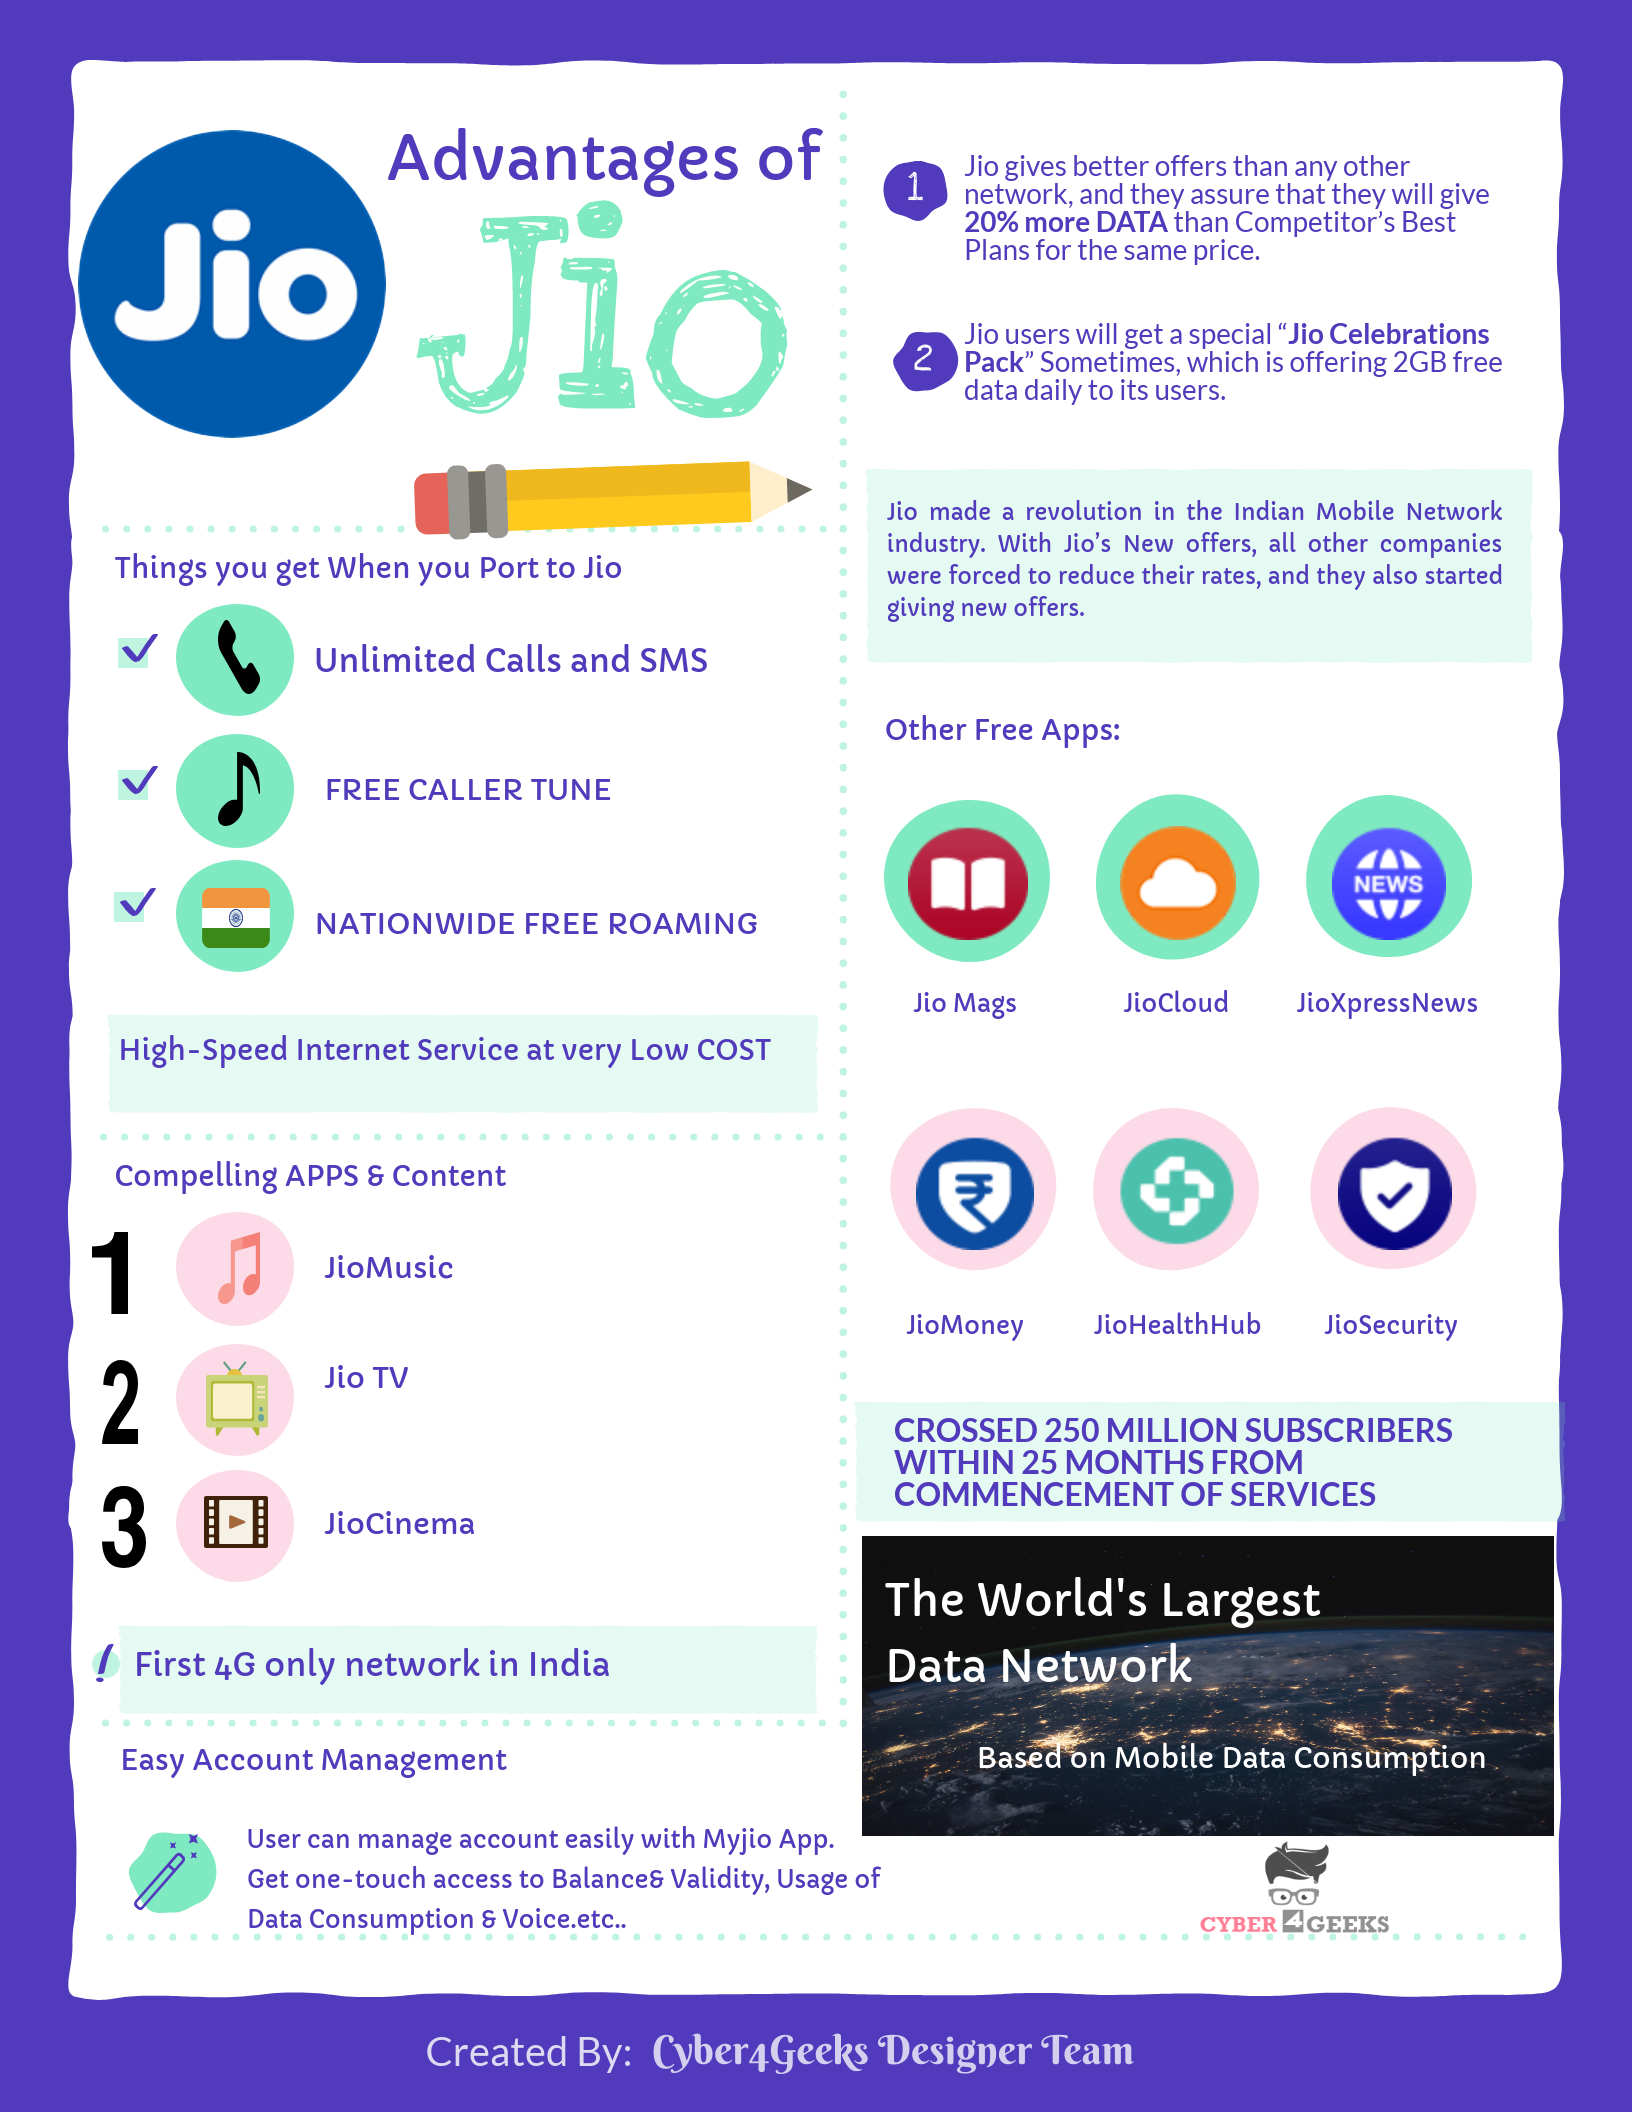 Advantages of Jio- Cyber4geeks